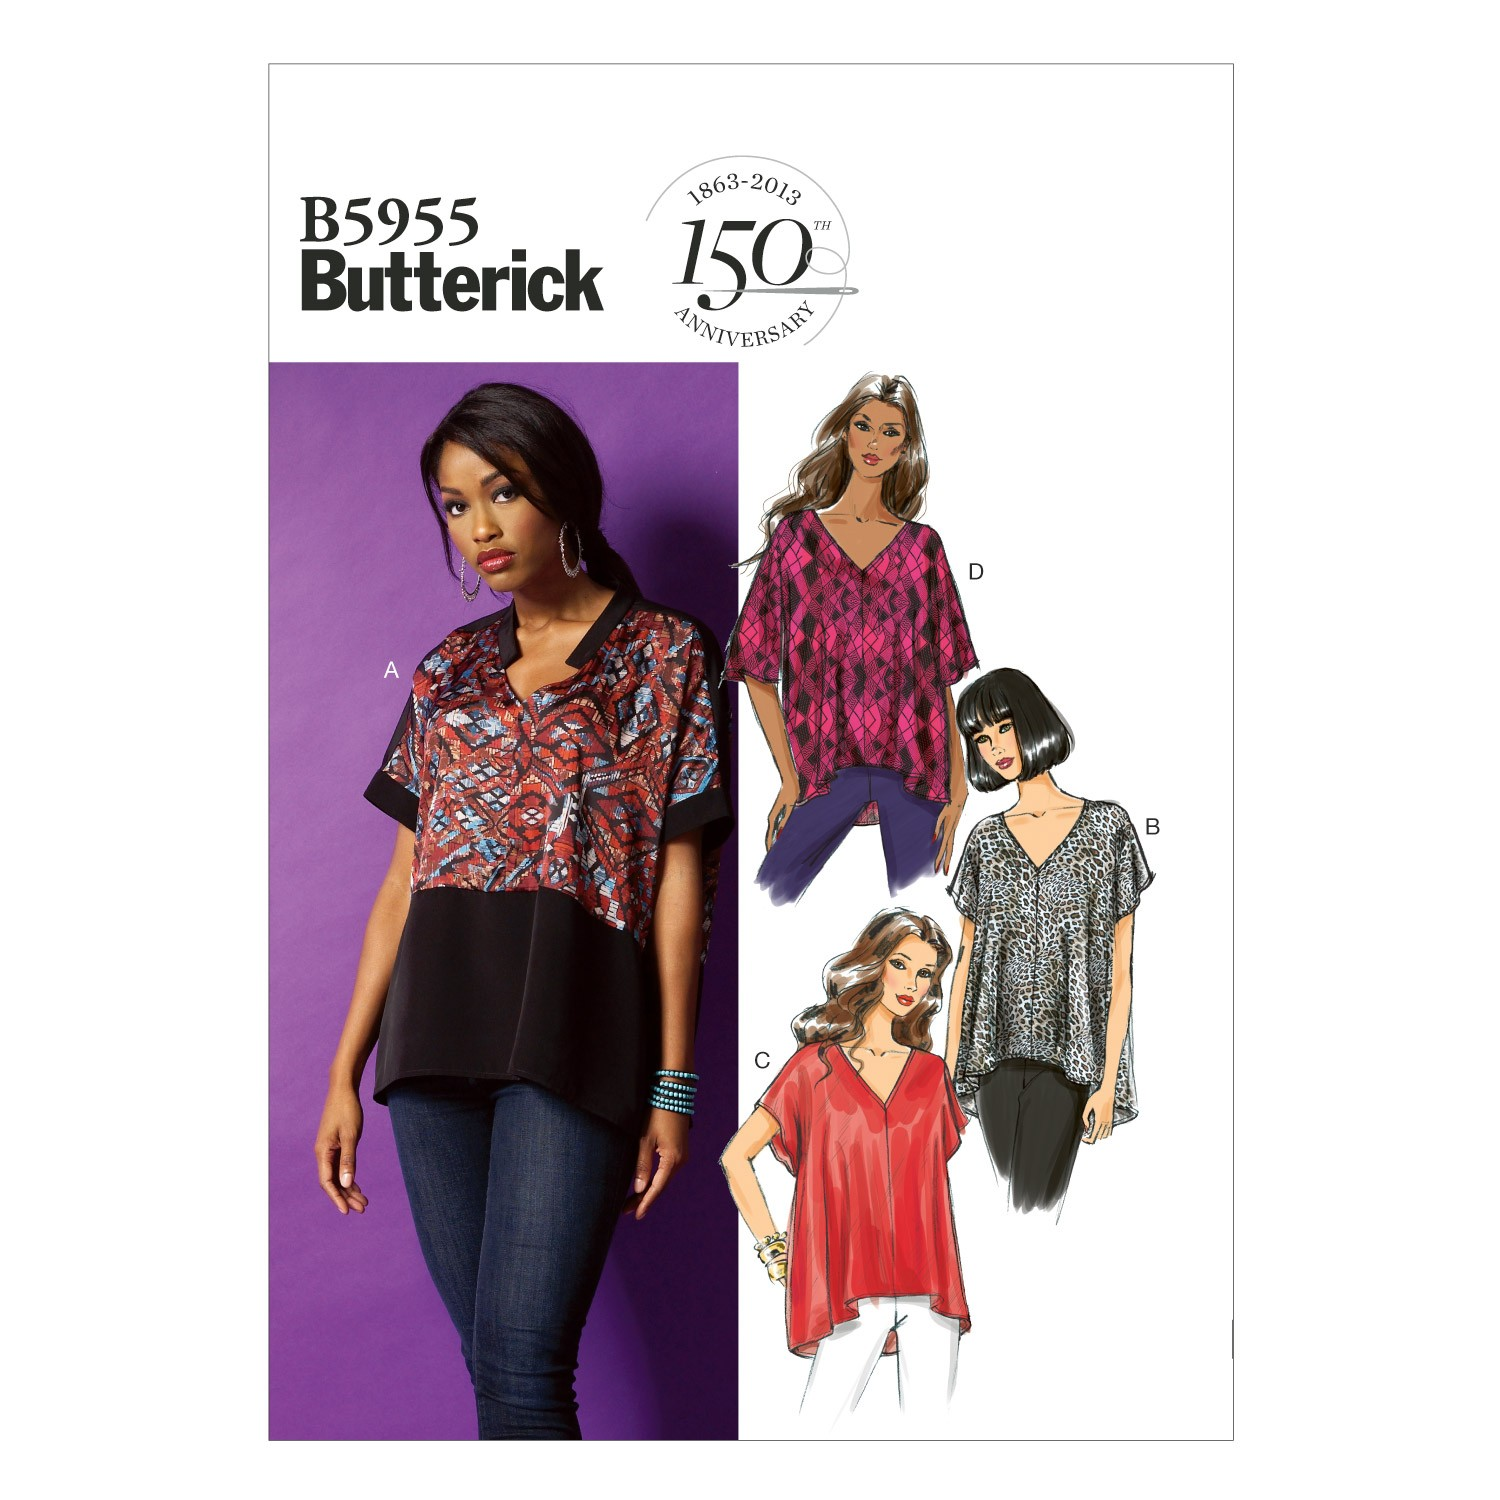 Butterick Sewing Pattern 5955 Misses' Loose Fitting Top